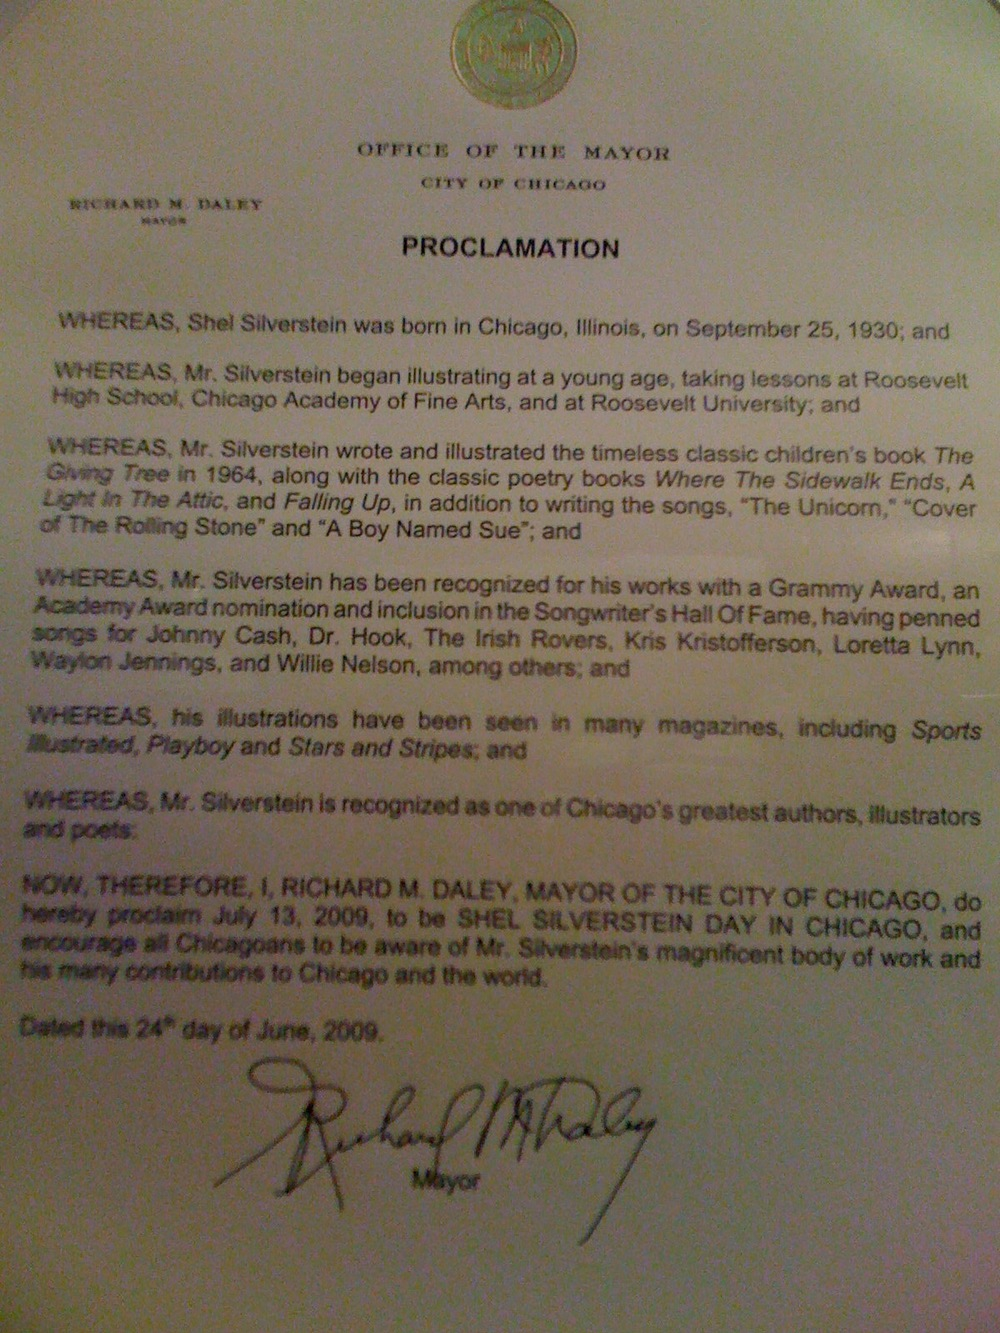 Creator and Producer of SHELebration! A Tribute to Shel Silverstein, in which I was able to have Mayor Daley Proclaim to be Shel Silverstein Day in Chicago. It now belongs to Shel's family & Archives